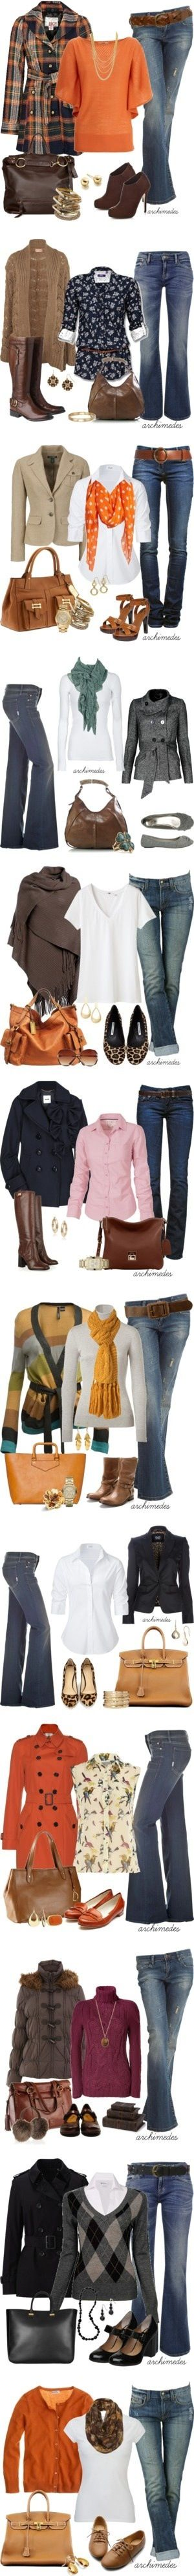 allllll kinds of fall outfits! I feel like i have pieces similar enough to these that I could try a few out!